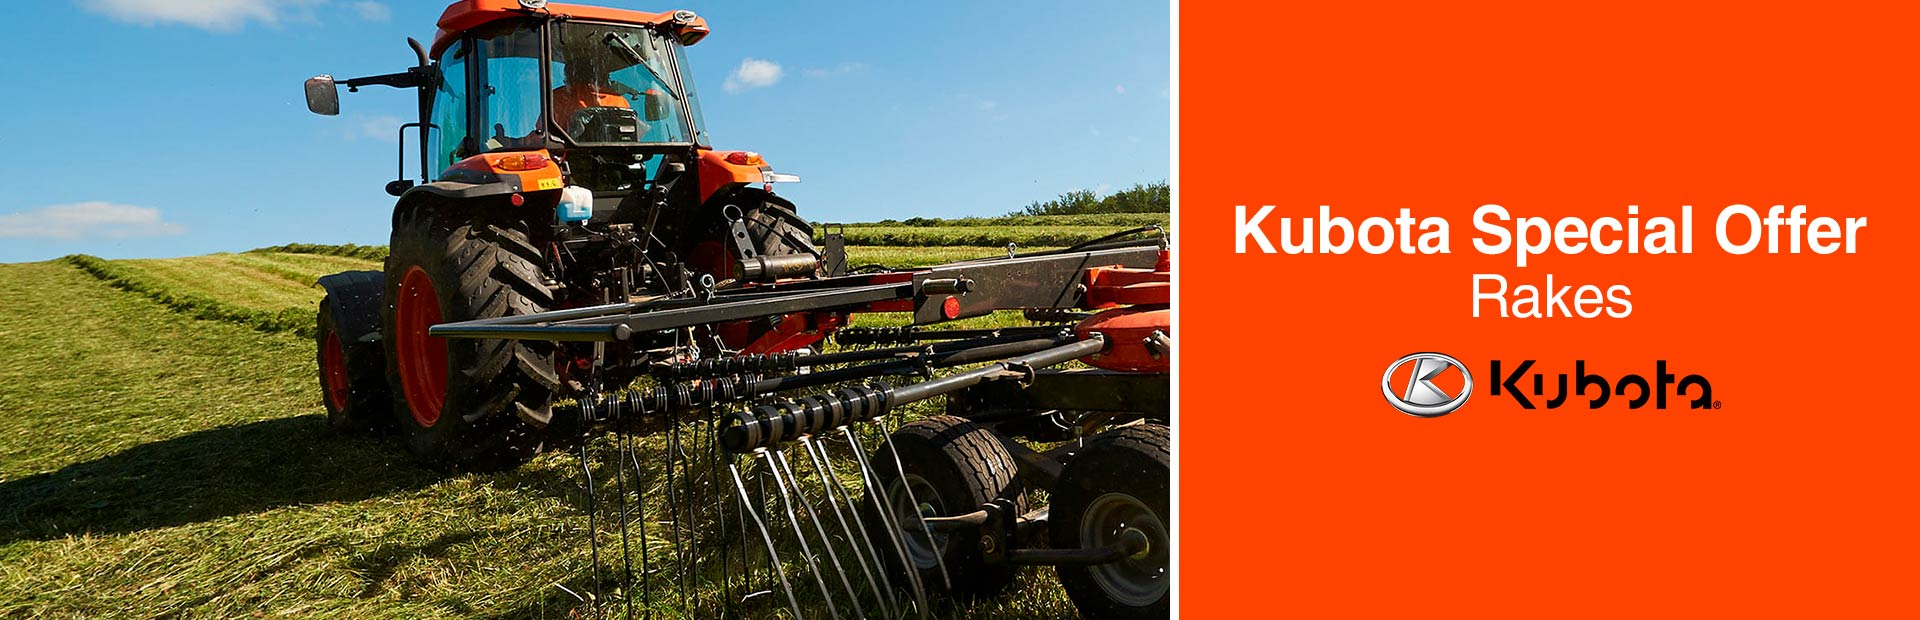 Kubota: Kubota Special Offer - Rakes